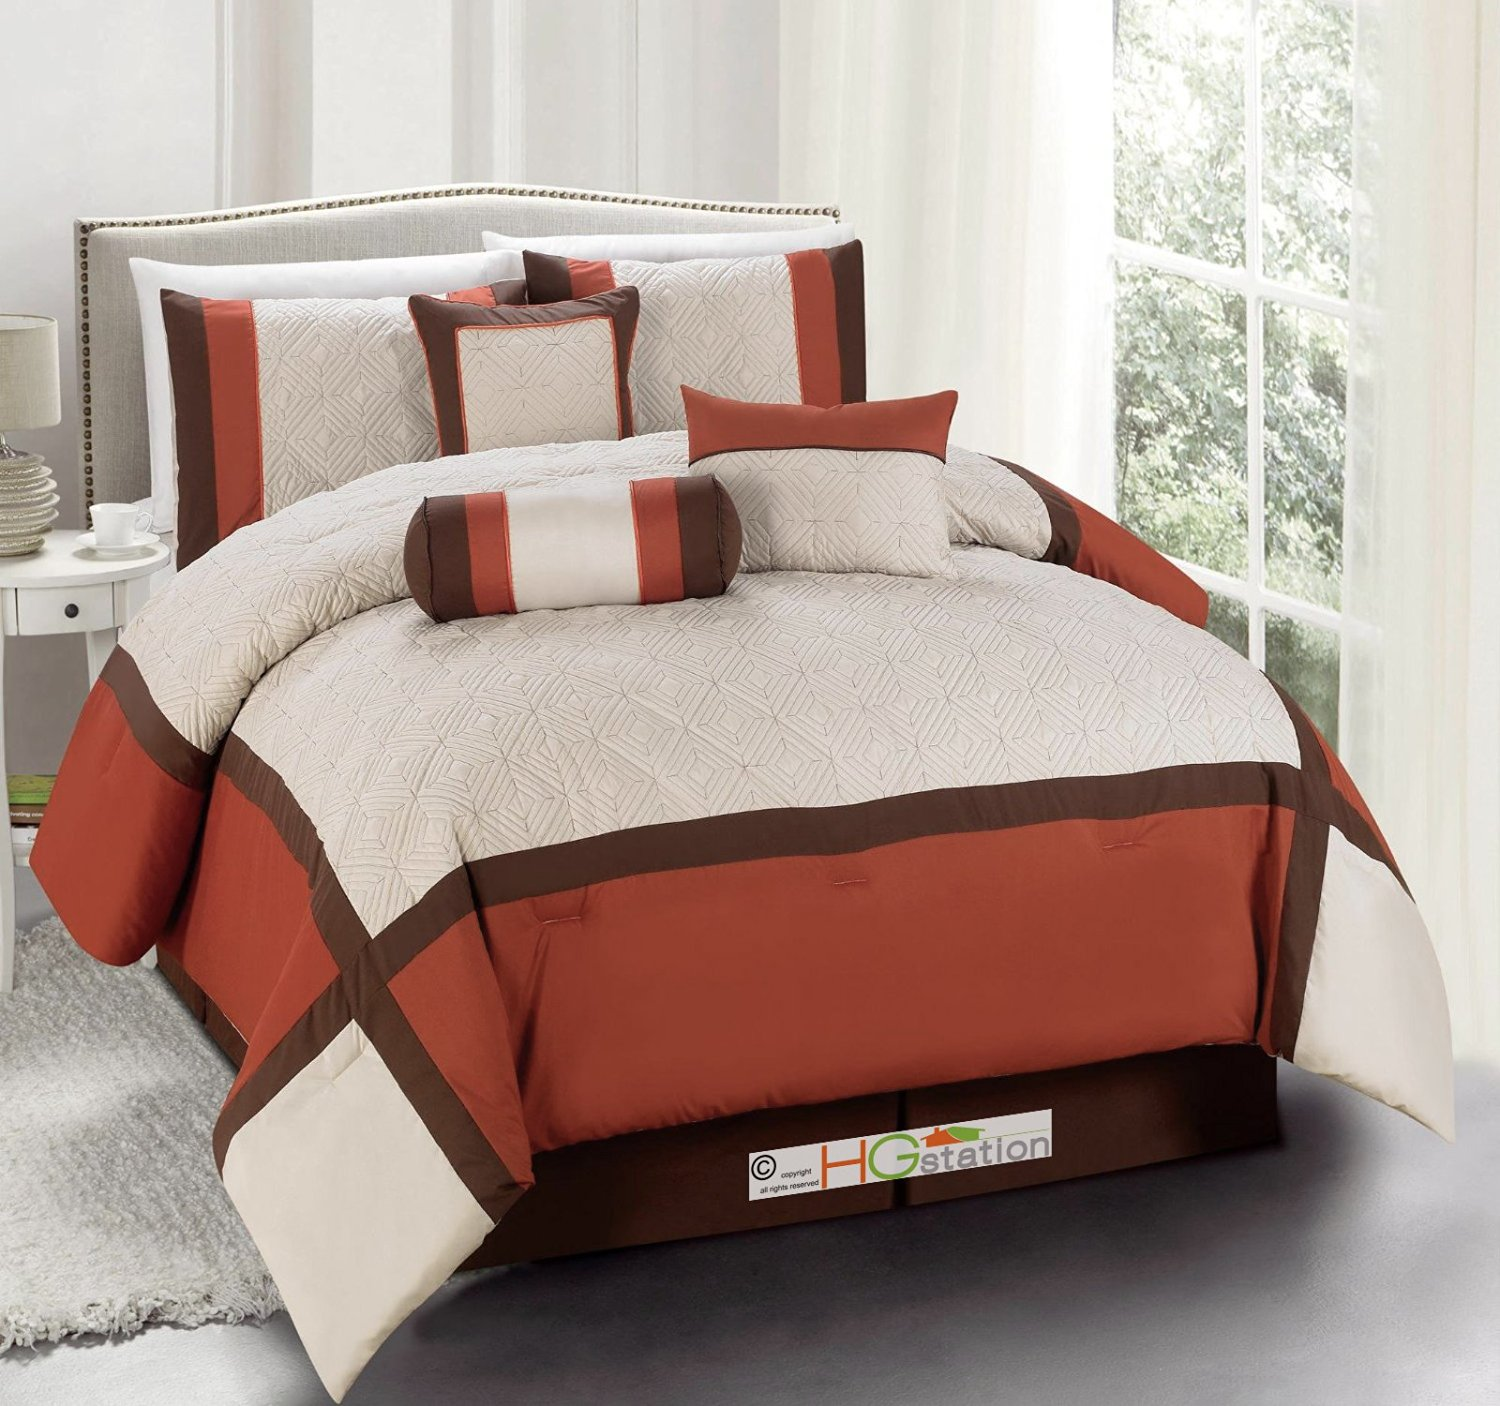 walmart mainstays multiple ip plus sizes in bed grey bedding a com comforter set piece rust bag plaid red